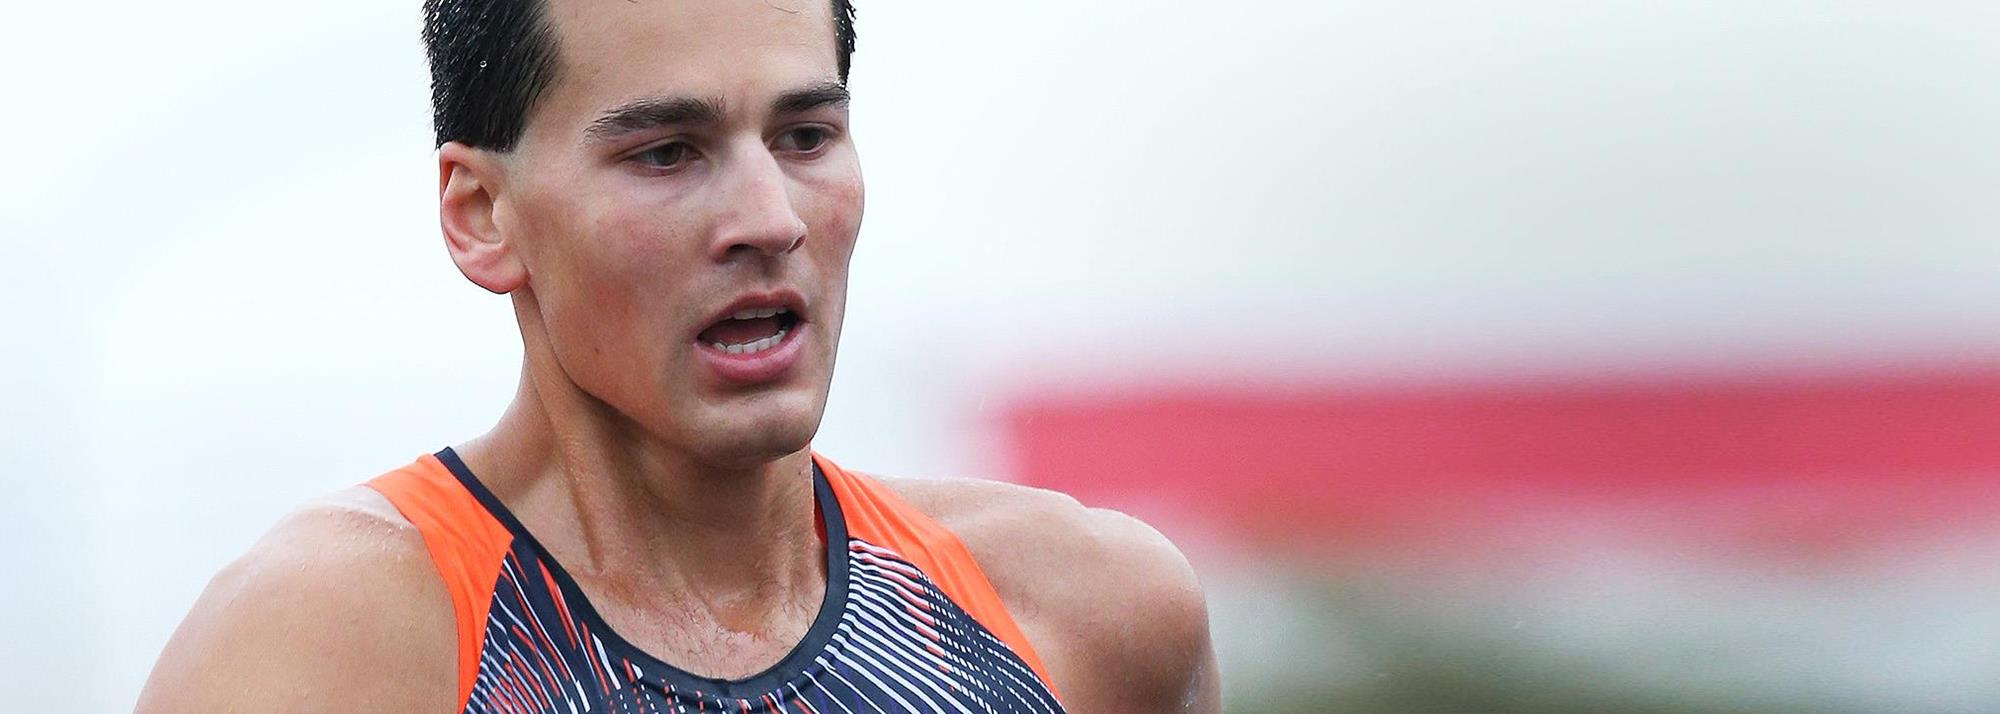 Olympic race walking qualifiers achieved by Karlstrom in Alytus and Wang in Tai'an